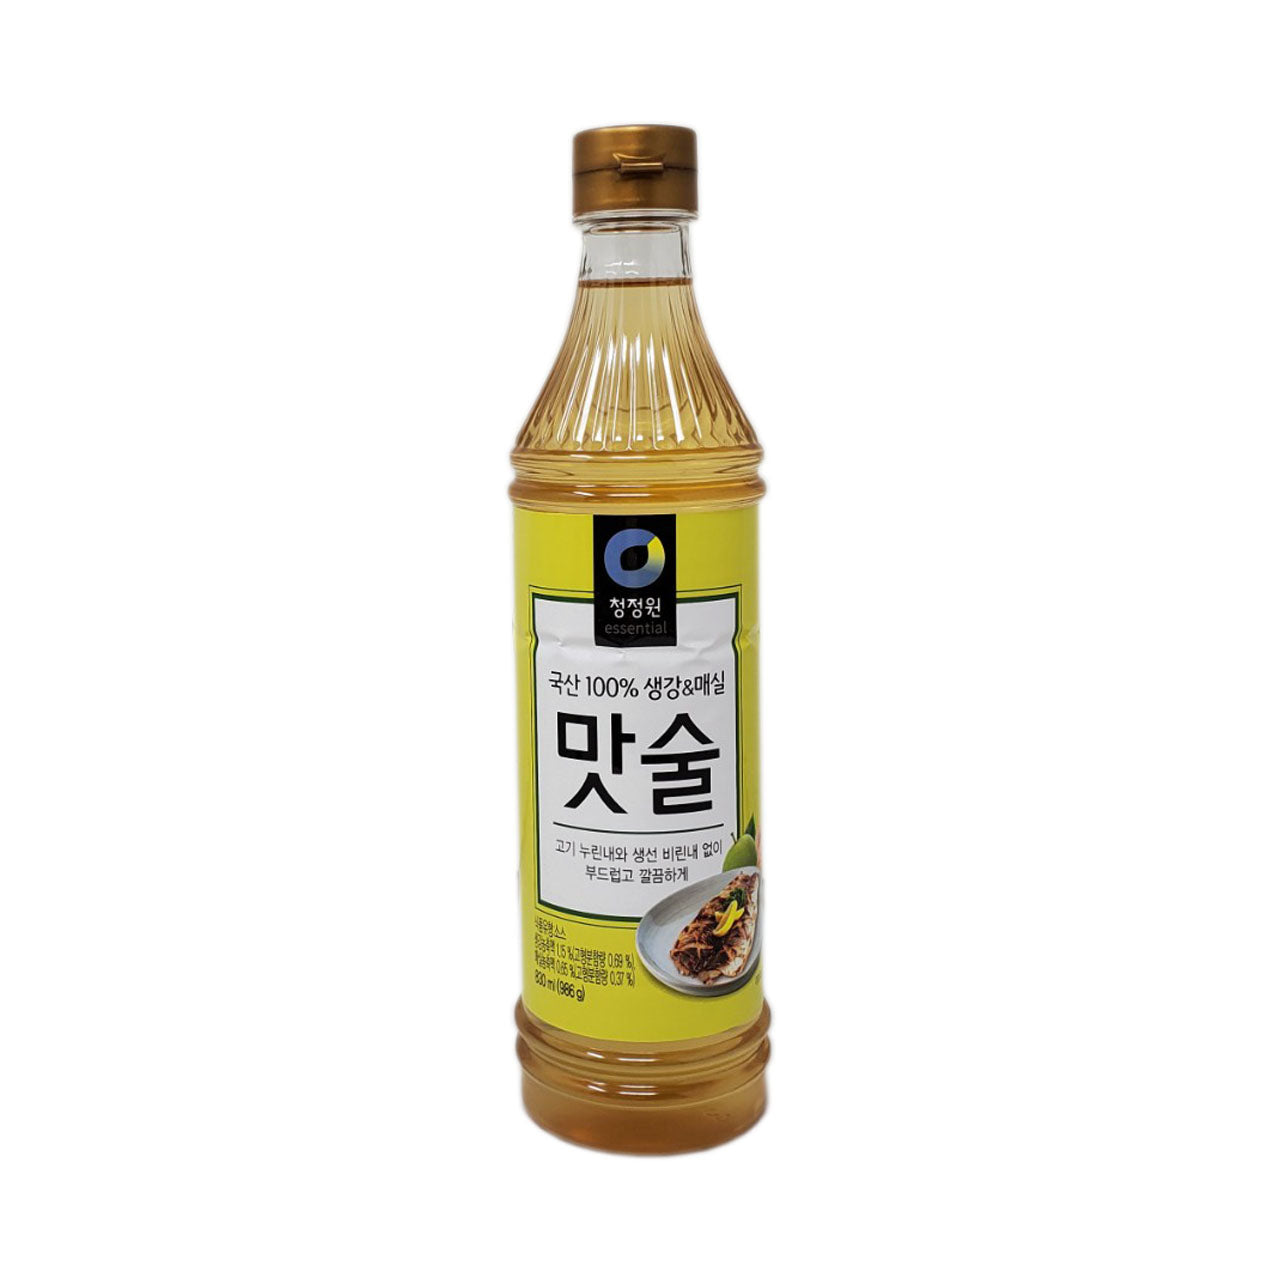 청정원 맛술 생강&미정 (Chungjungone Sushi Sauce w Ginger & Plum) 830ml